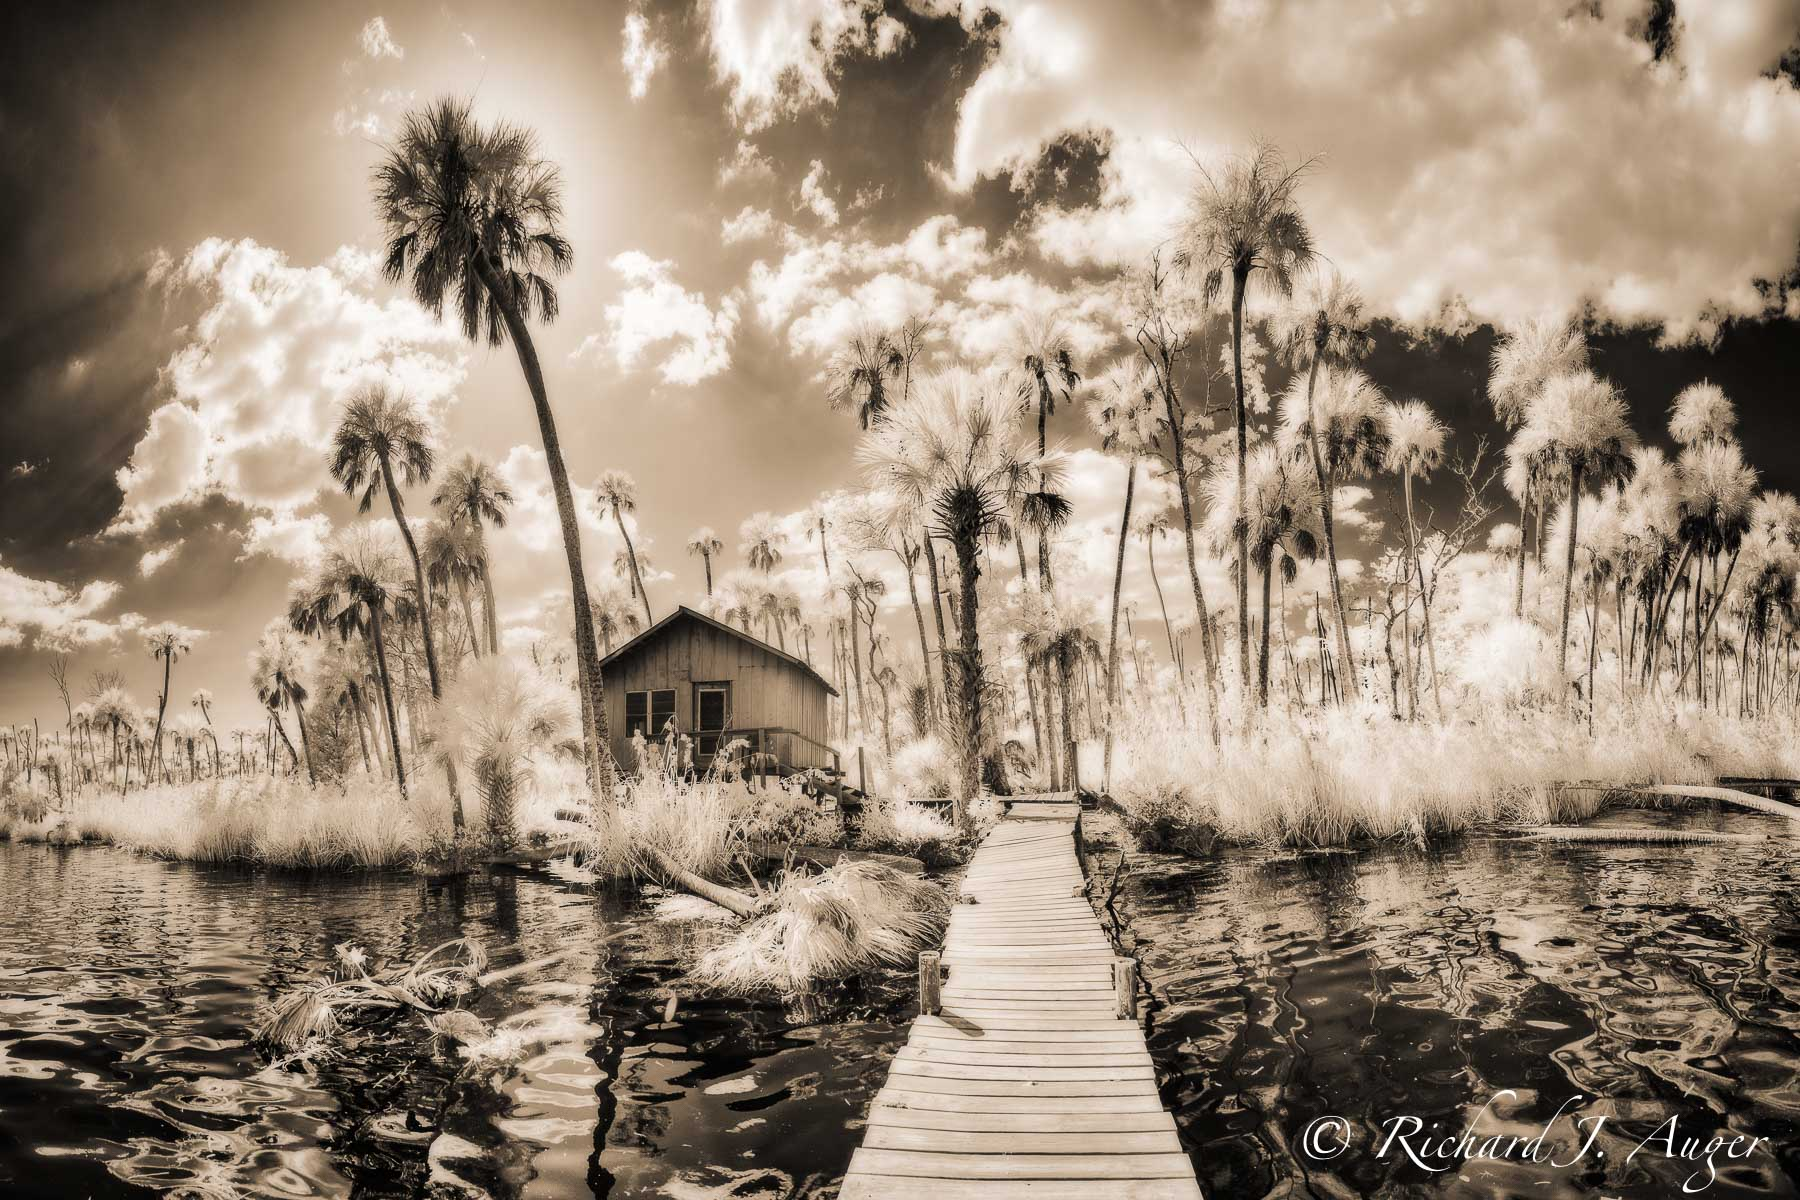 Chassahowitzka River, Florida, Shack, Walkway, Palm Trees, Water, Coastal, Swamp, Kayaking, Landscape, Photographer, Infrared, Backlit, sepia tone, monochrome